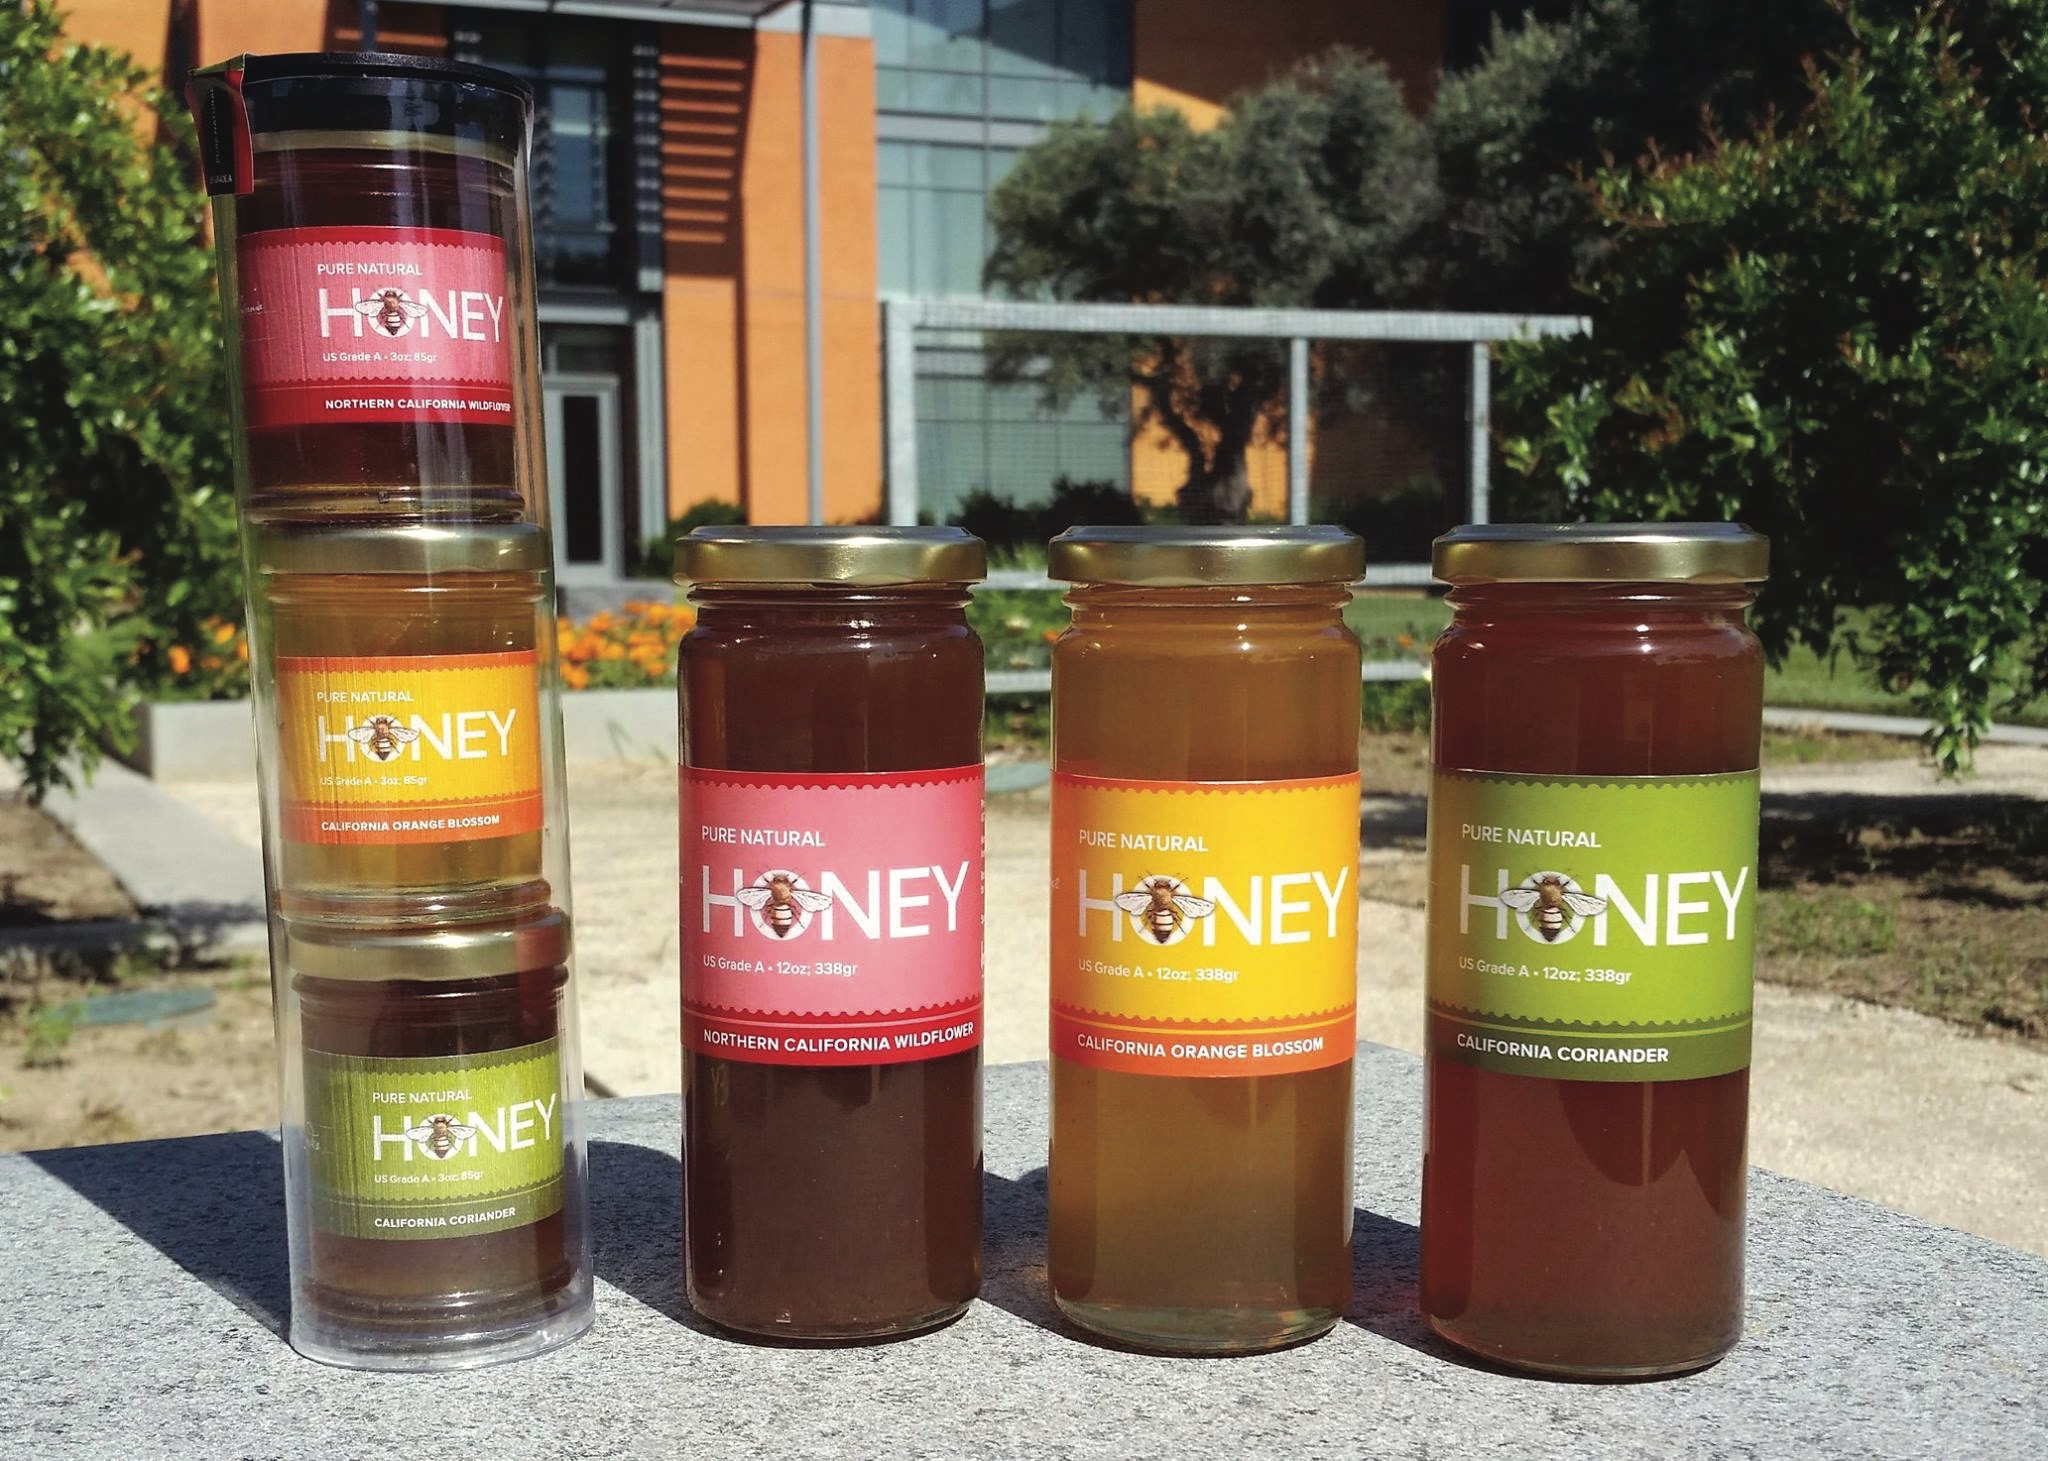 Guide to local honey flavors